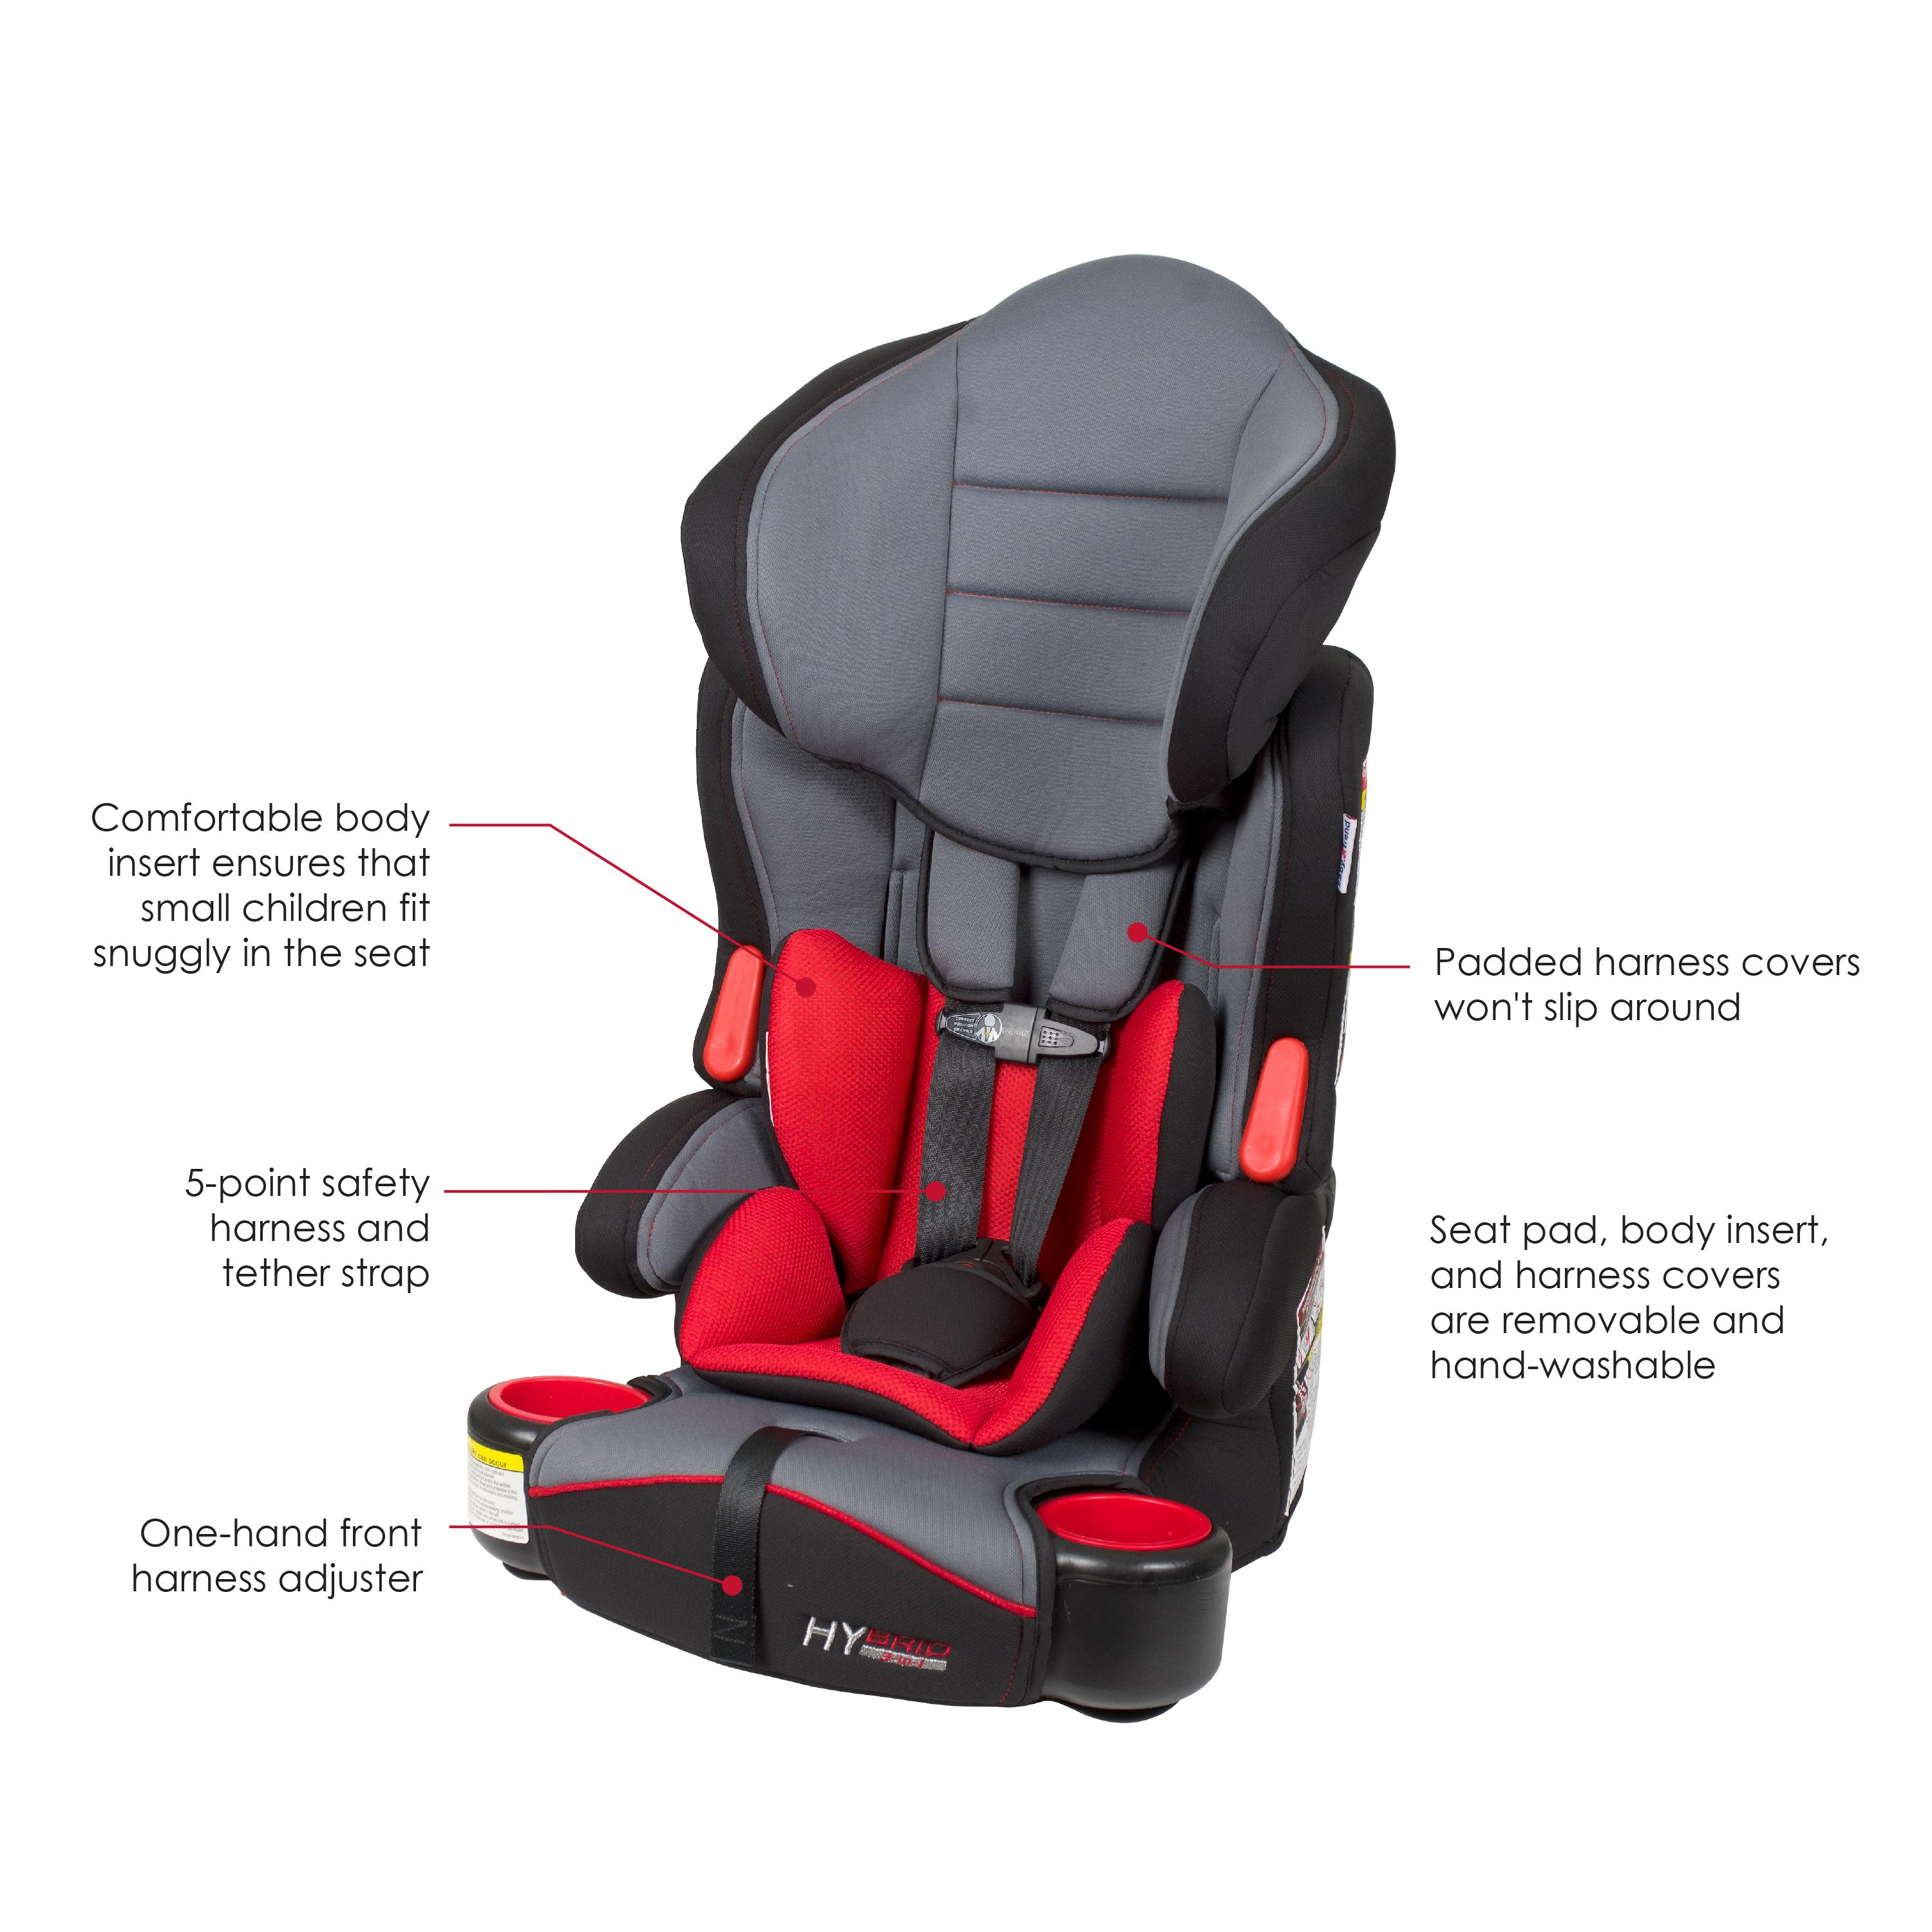 Amazon Baby Trend Hybrid Booster 3 In 1 Car Seat Ozone